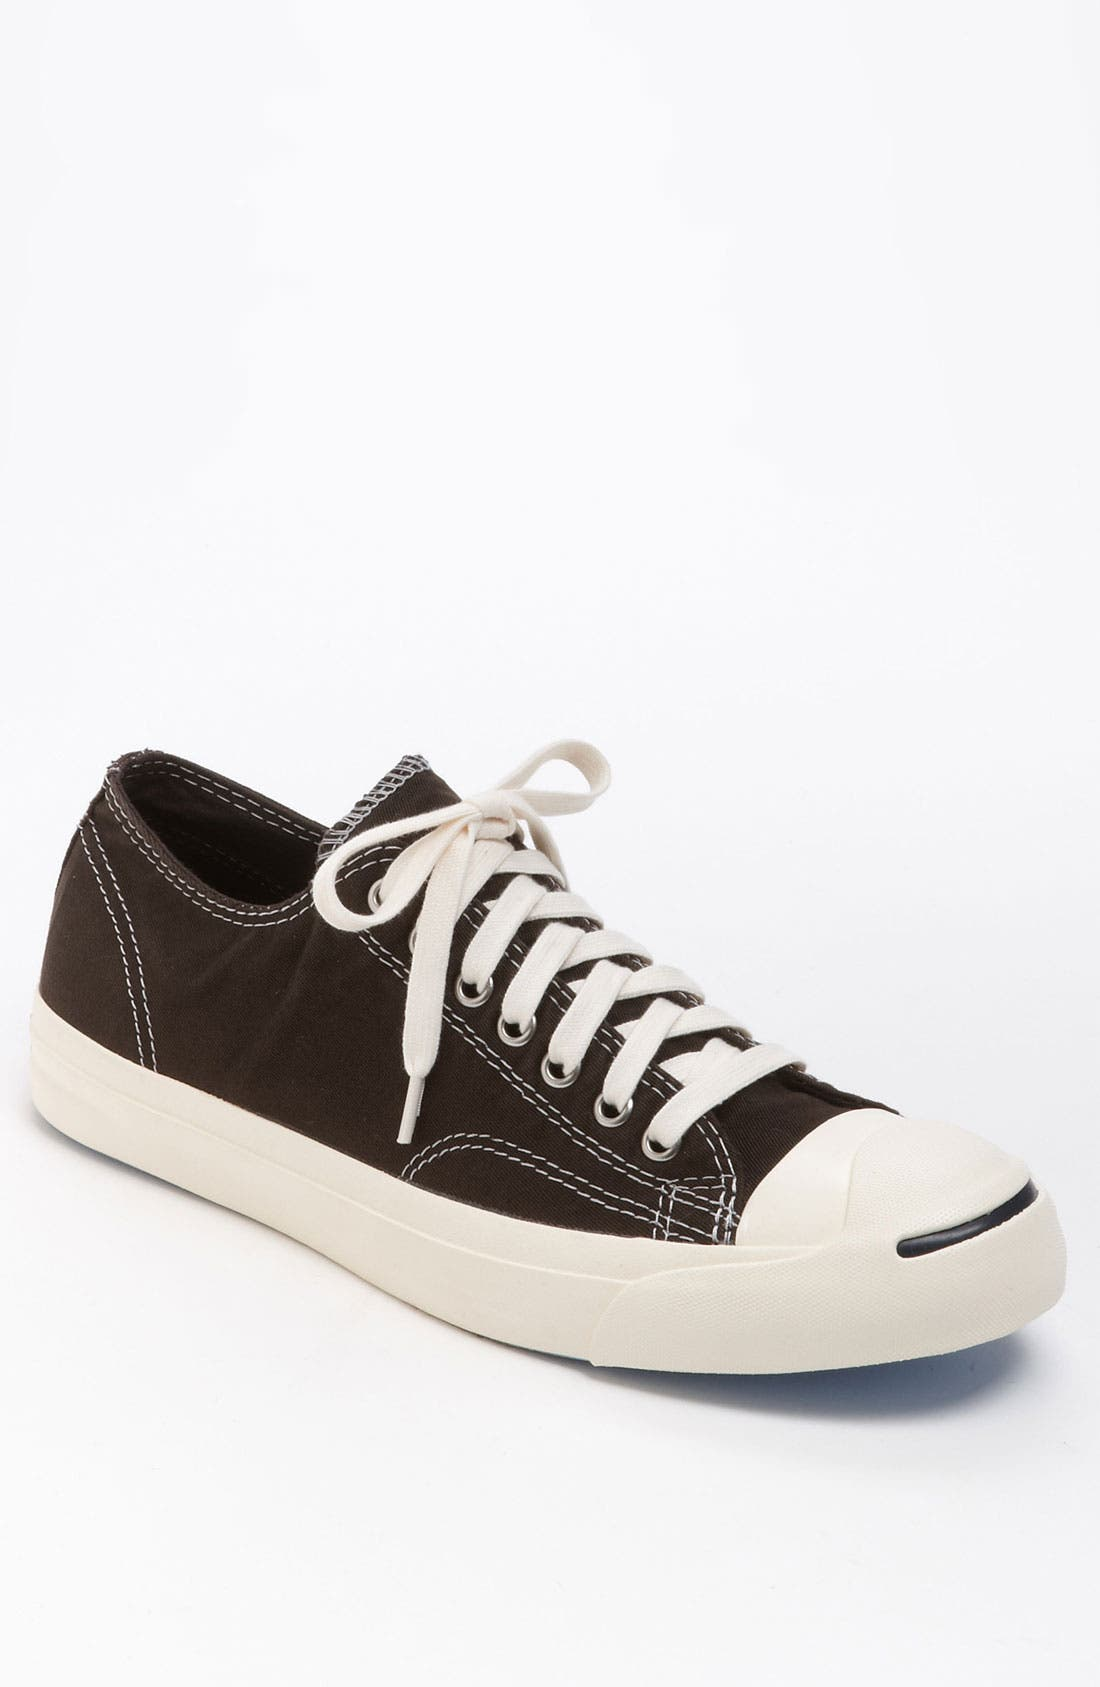 'Jack Purcell LTT' Sneaker,                             Main thumbnail 1, color,                             001